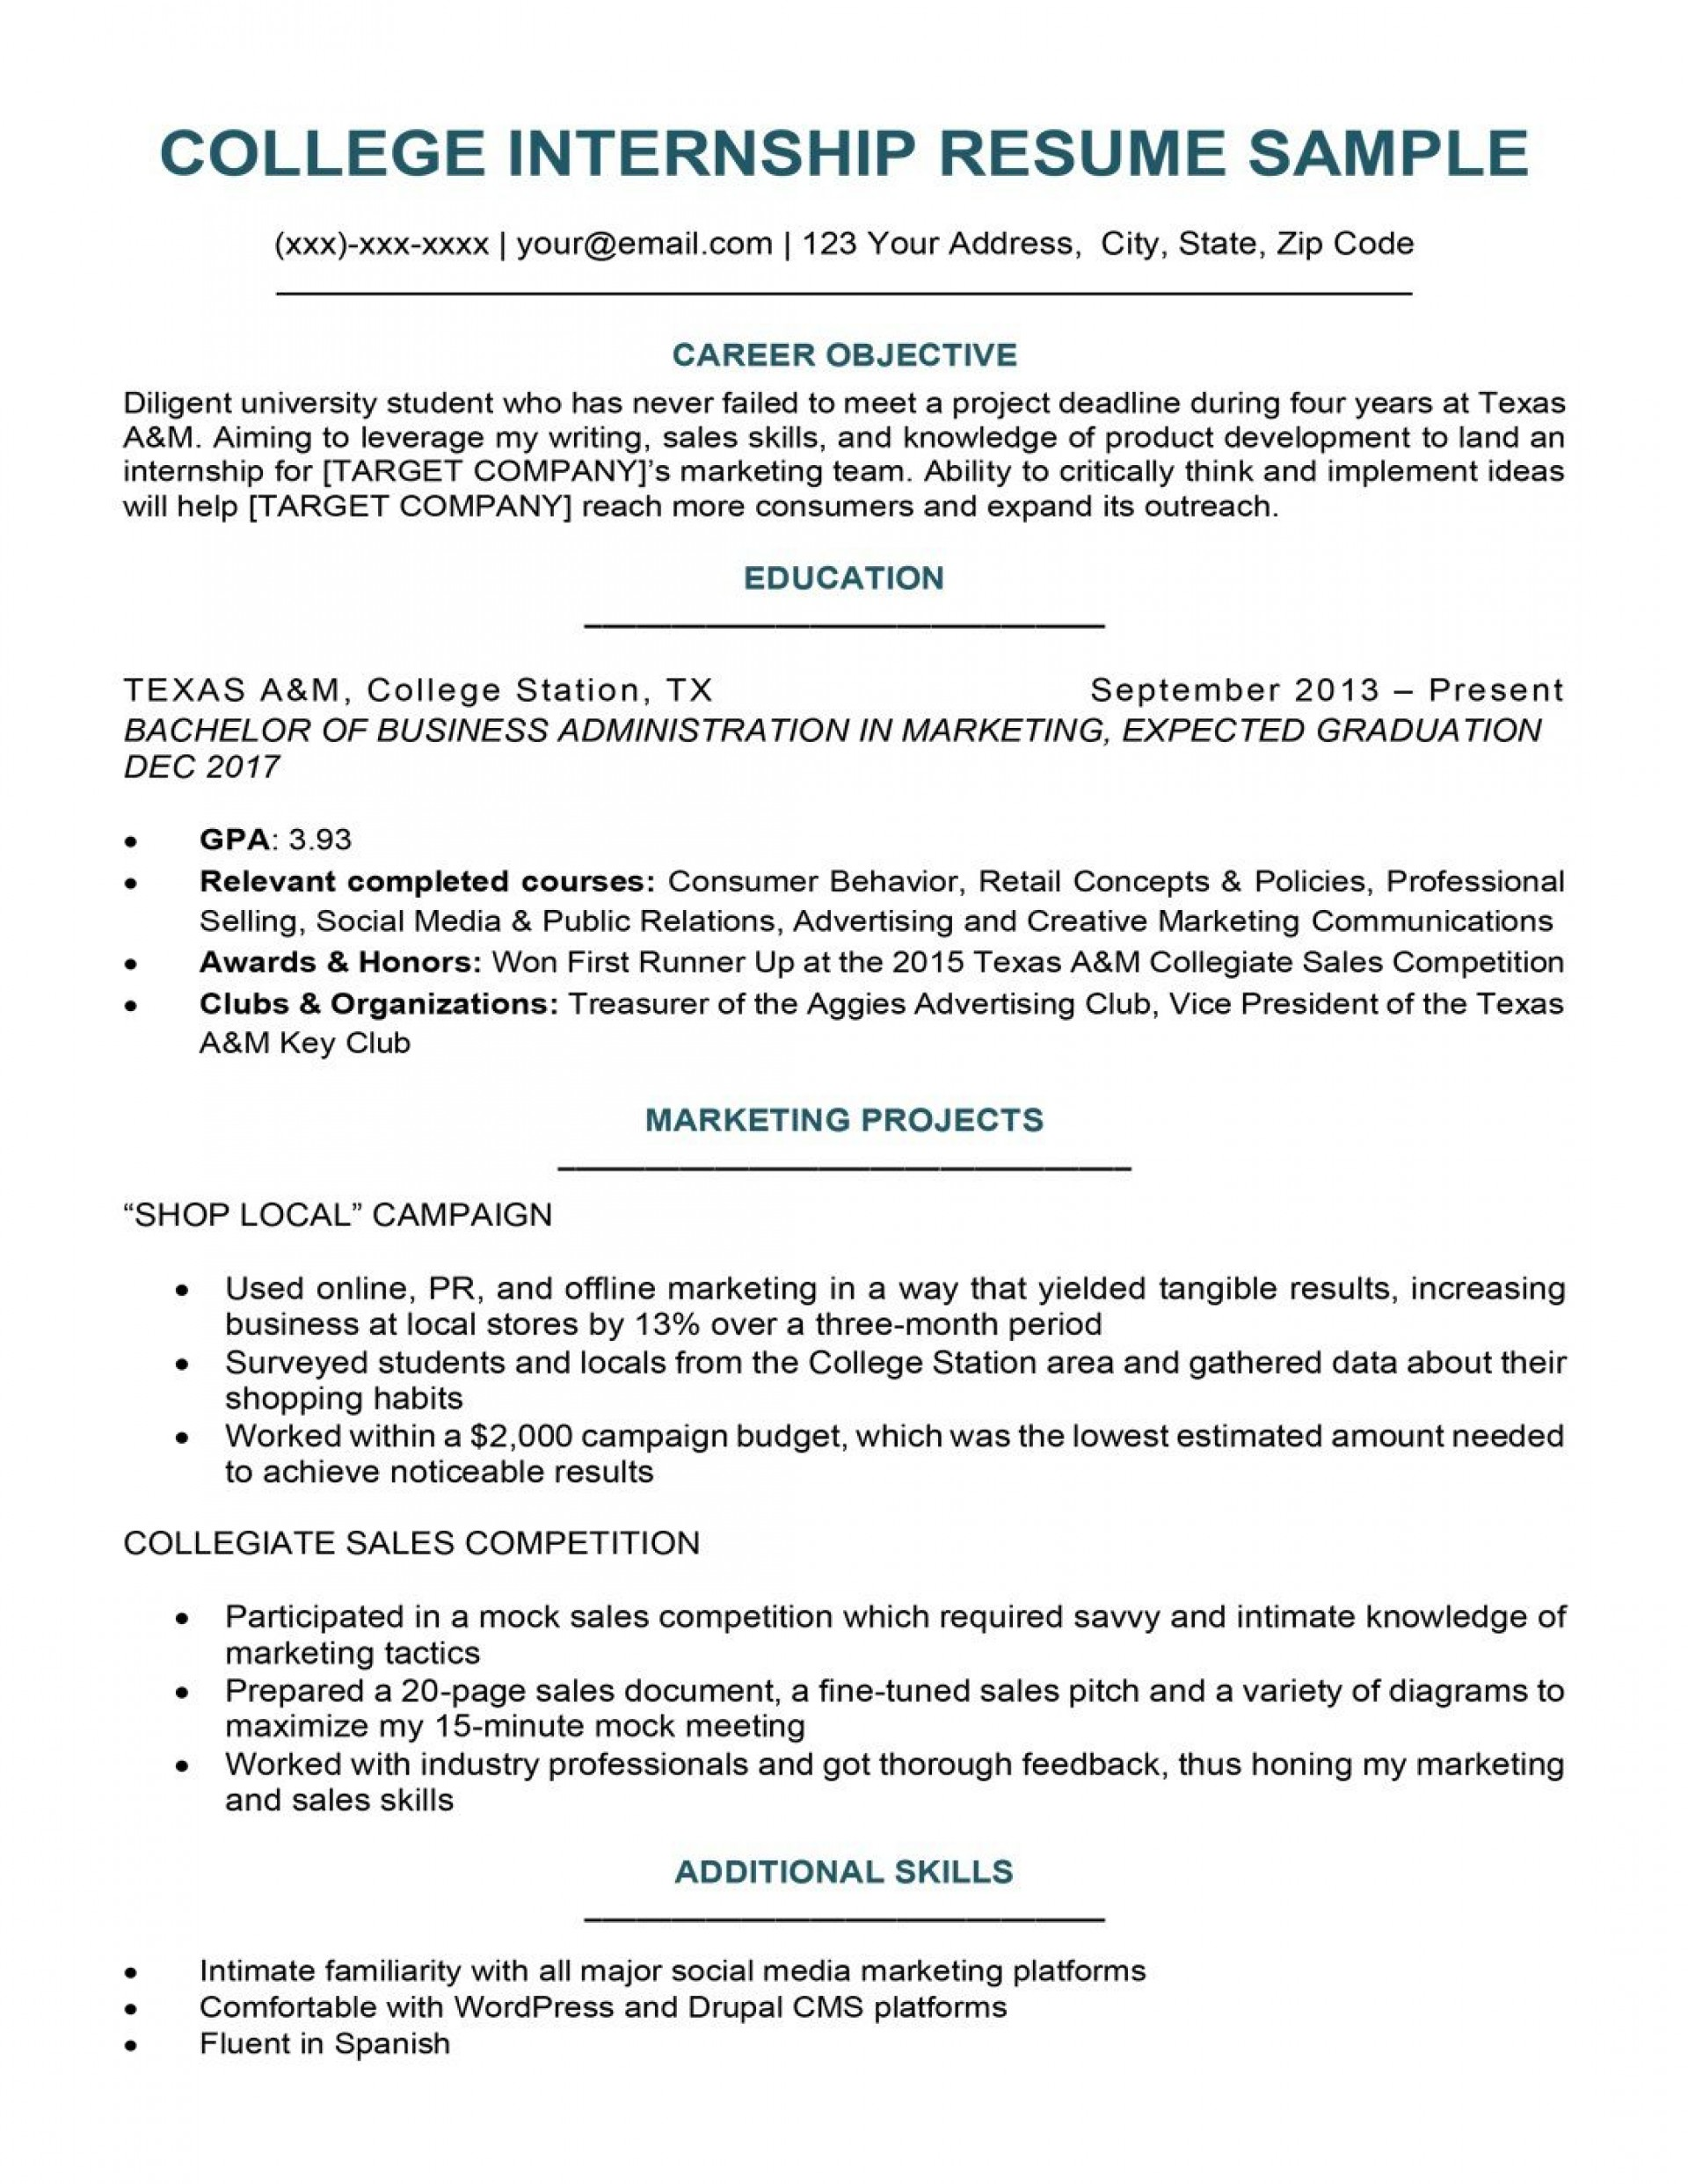 008 Unusual Resume Template For College Student Sample  Students Free Download Example With Little Work Experience1920